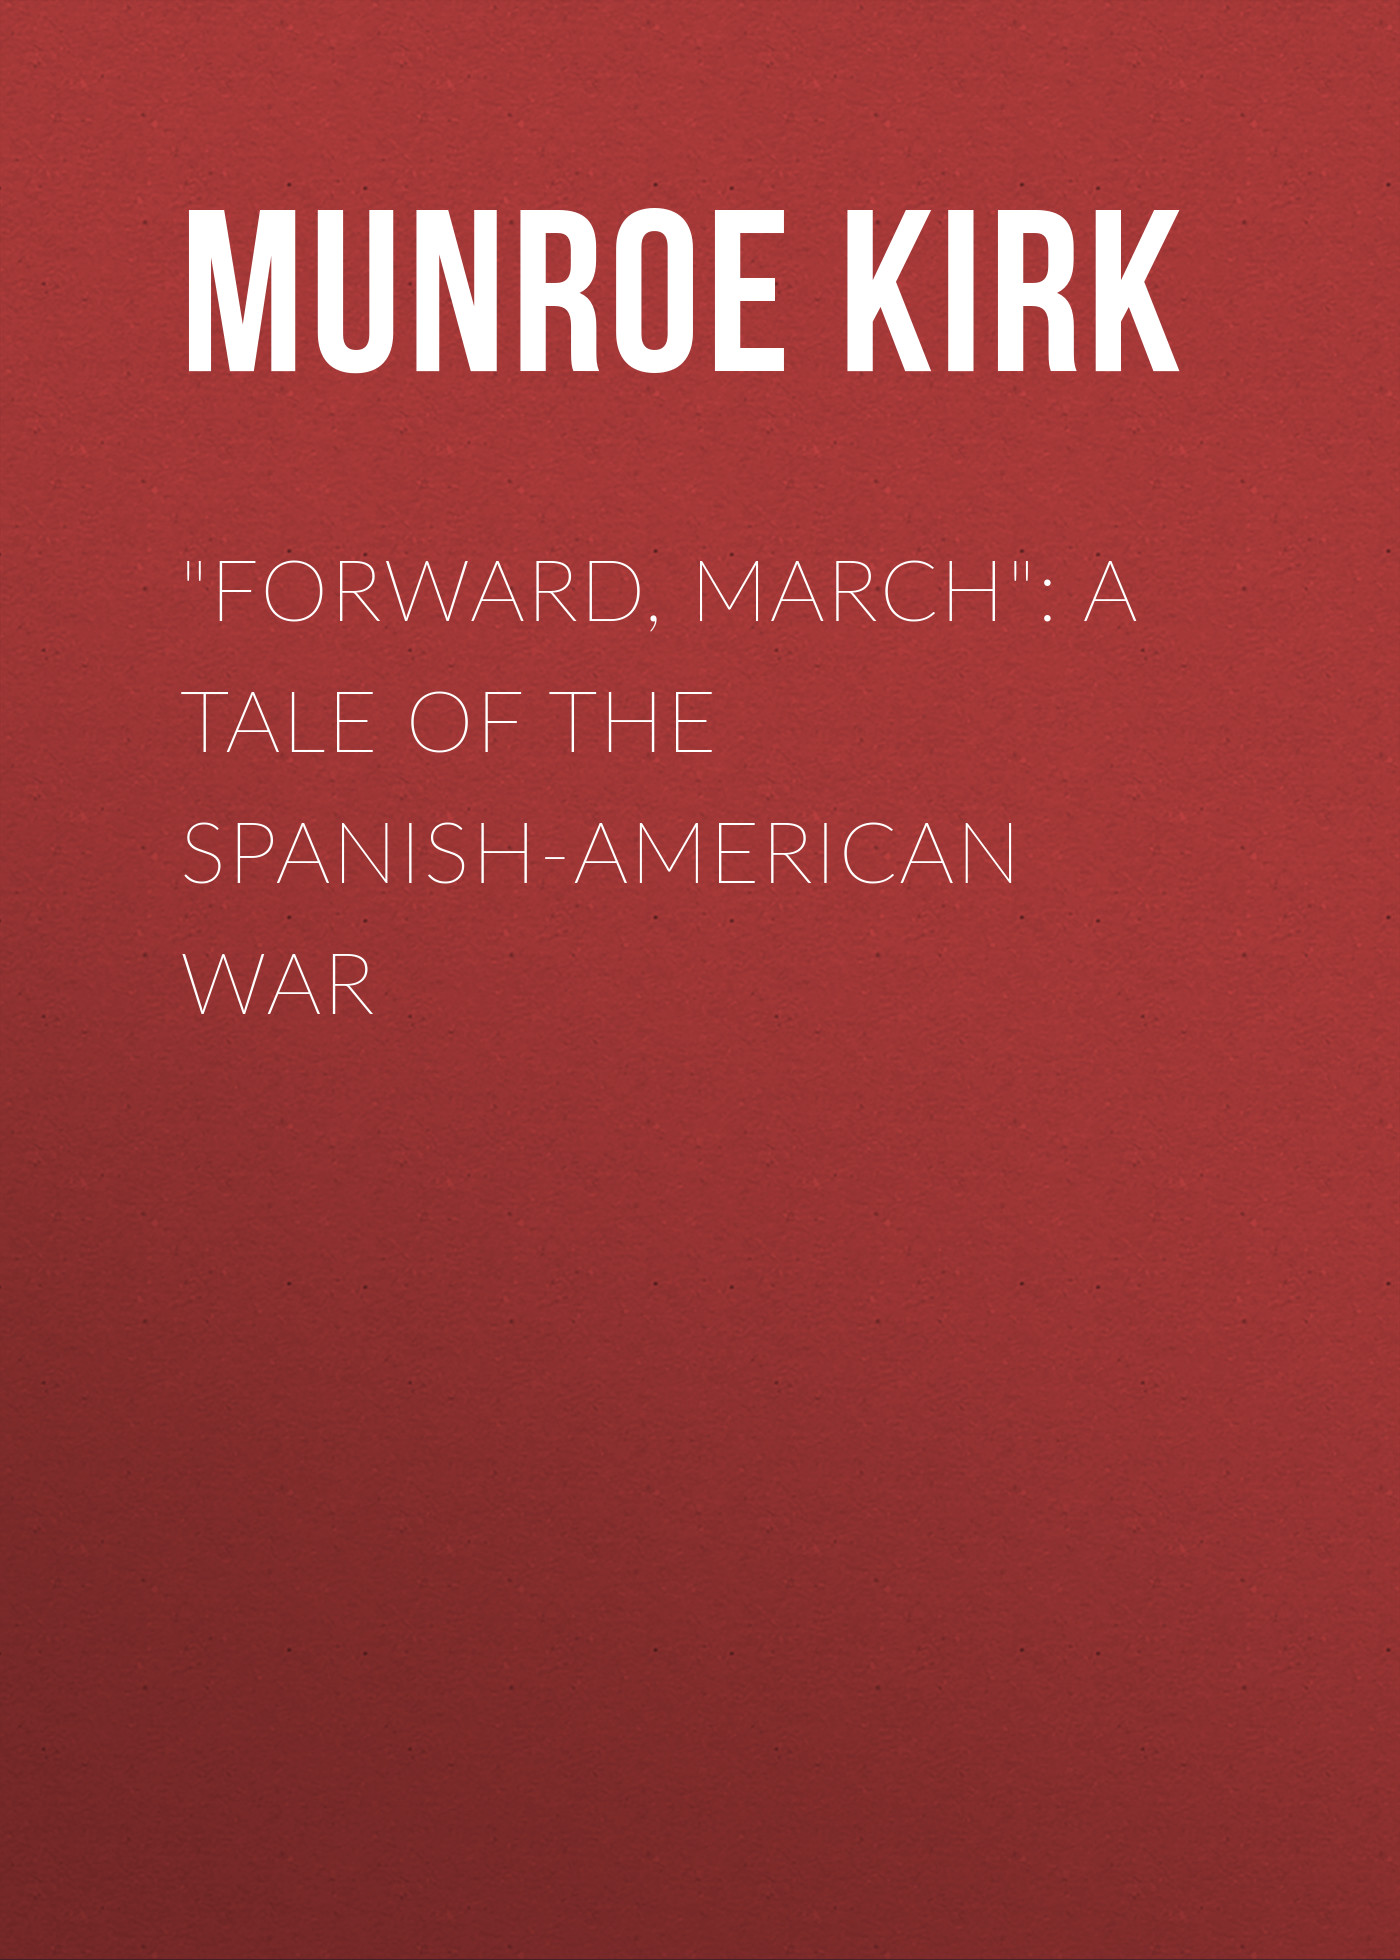 Munroe Kirk Forward, March: A Tale of the Spanish-American War